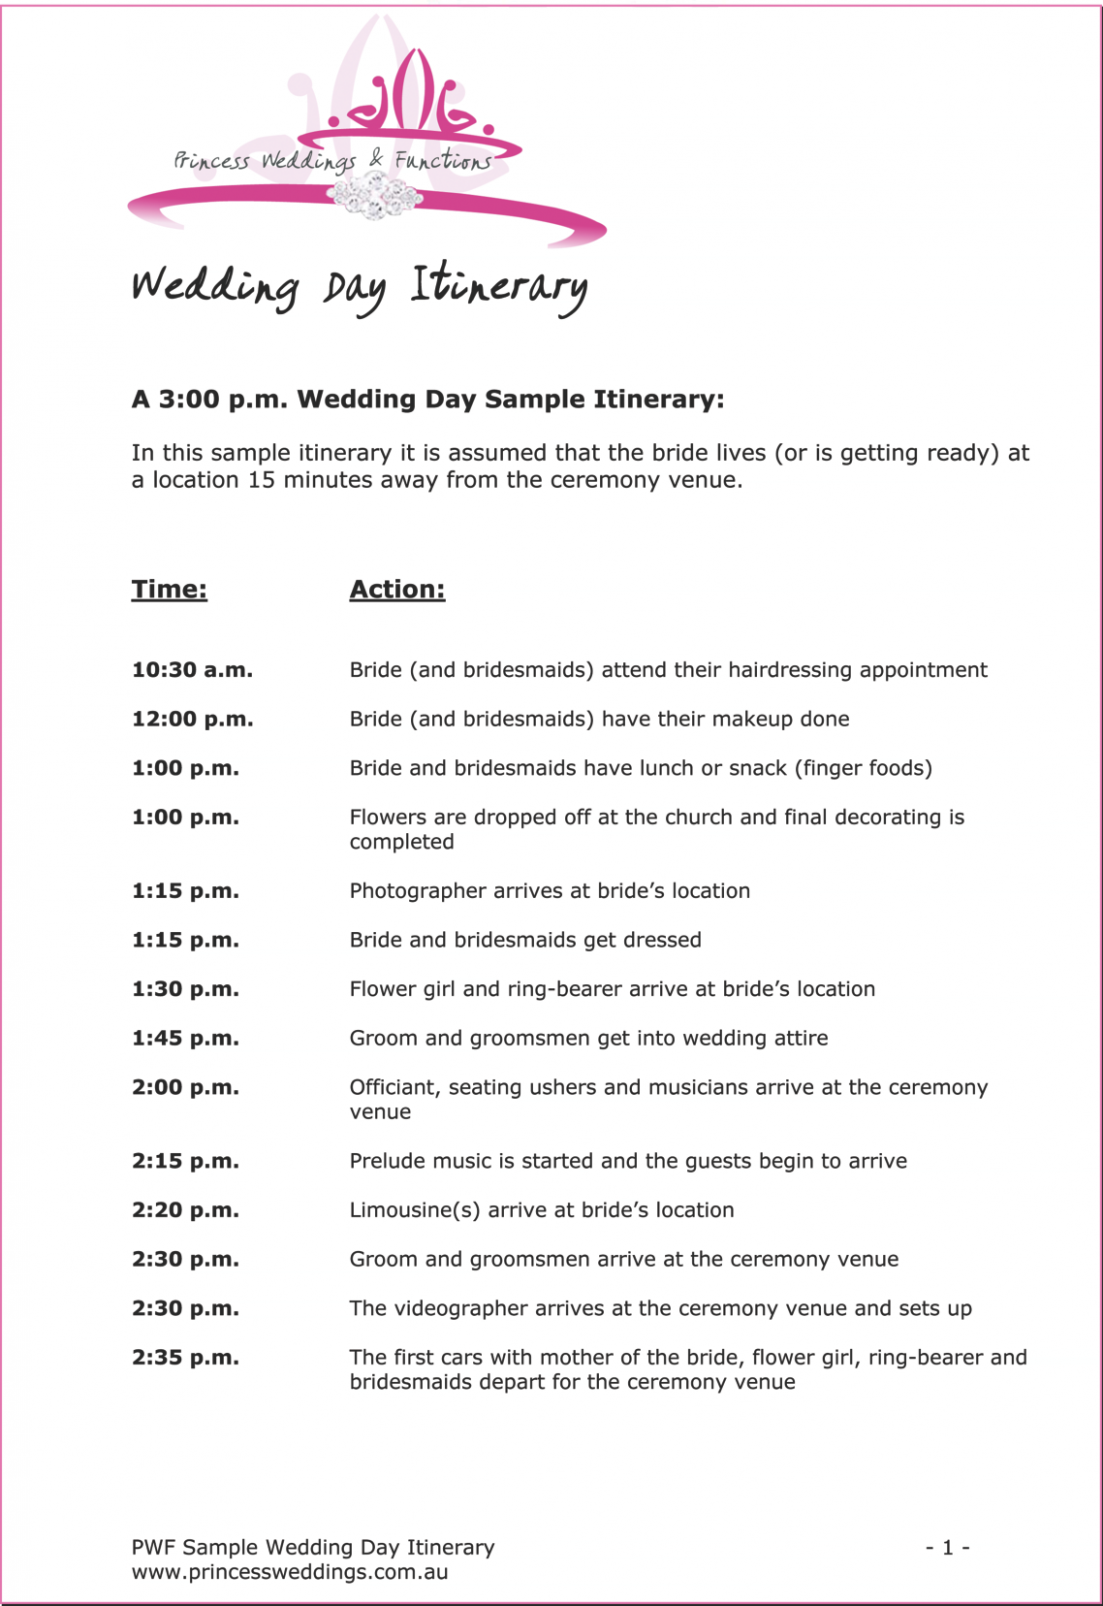 Wedding Itinerary Template Lisamaurodesign Weddingceremony Itinerarybridalparties Wedding Day Itinerary Wedding Itinerary Template Wedding Itinerary